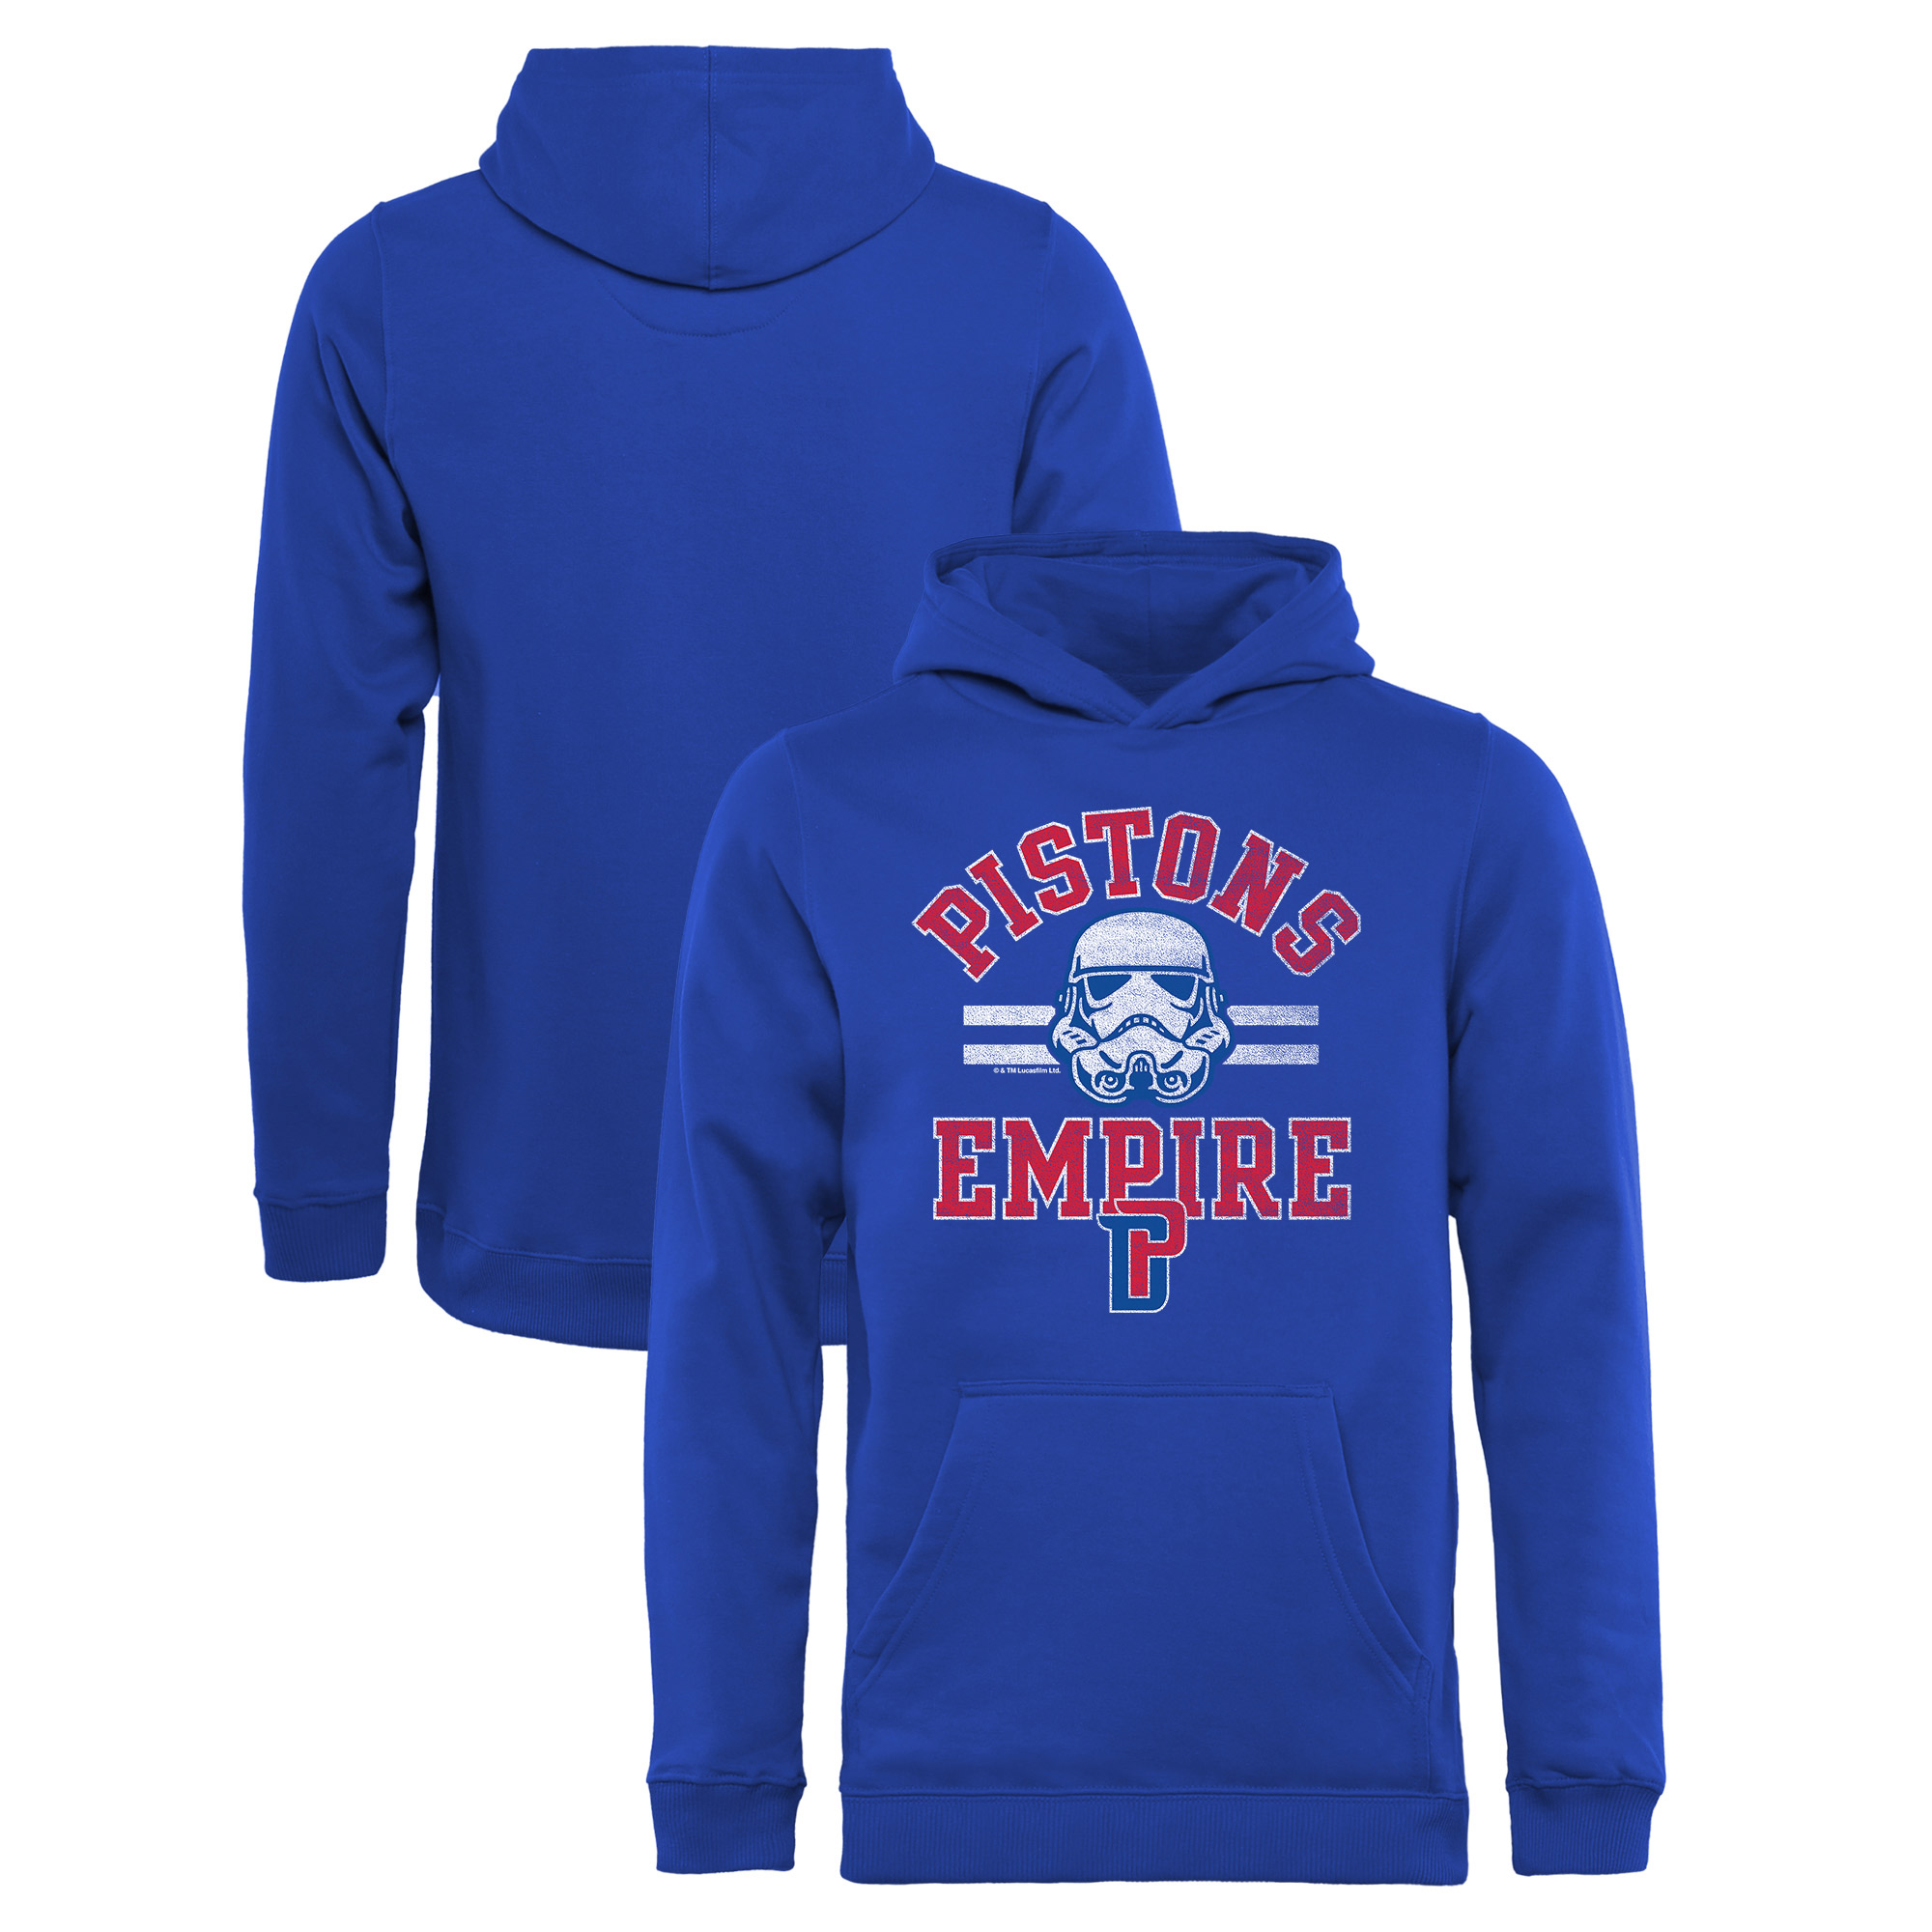 Detroit Pistons Fanatics Branded Youth Star Wars Empire Pullover Hoodie - Royal